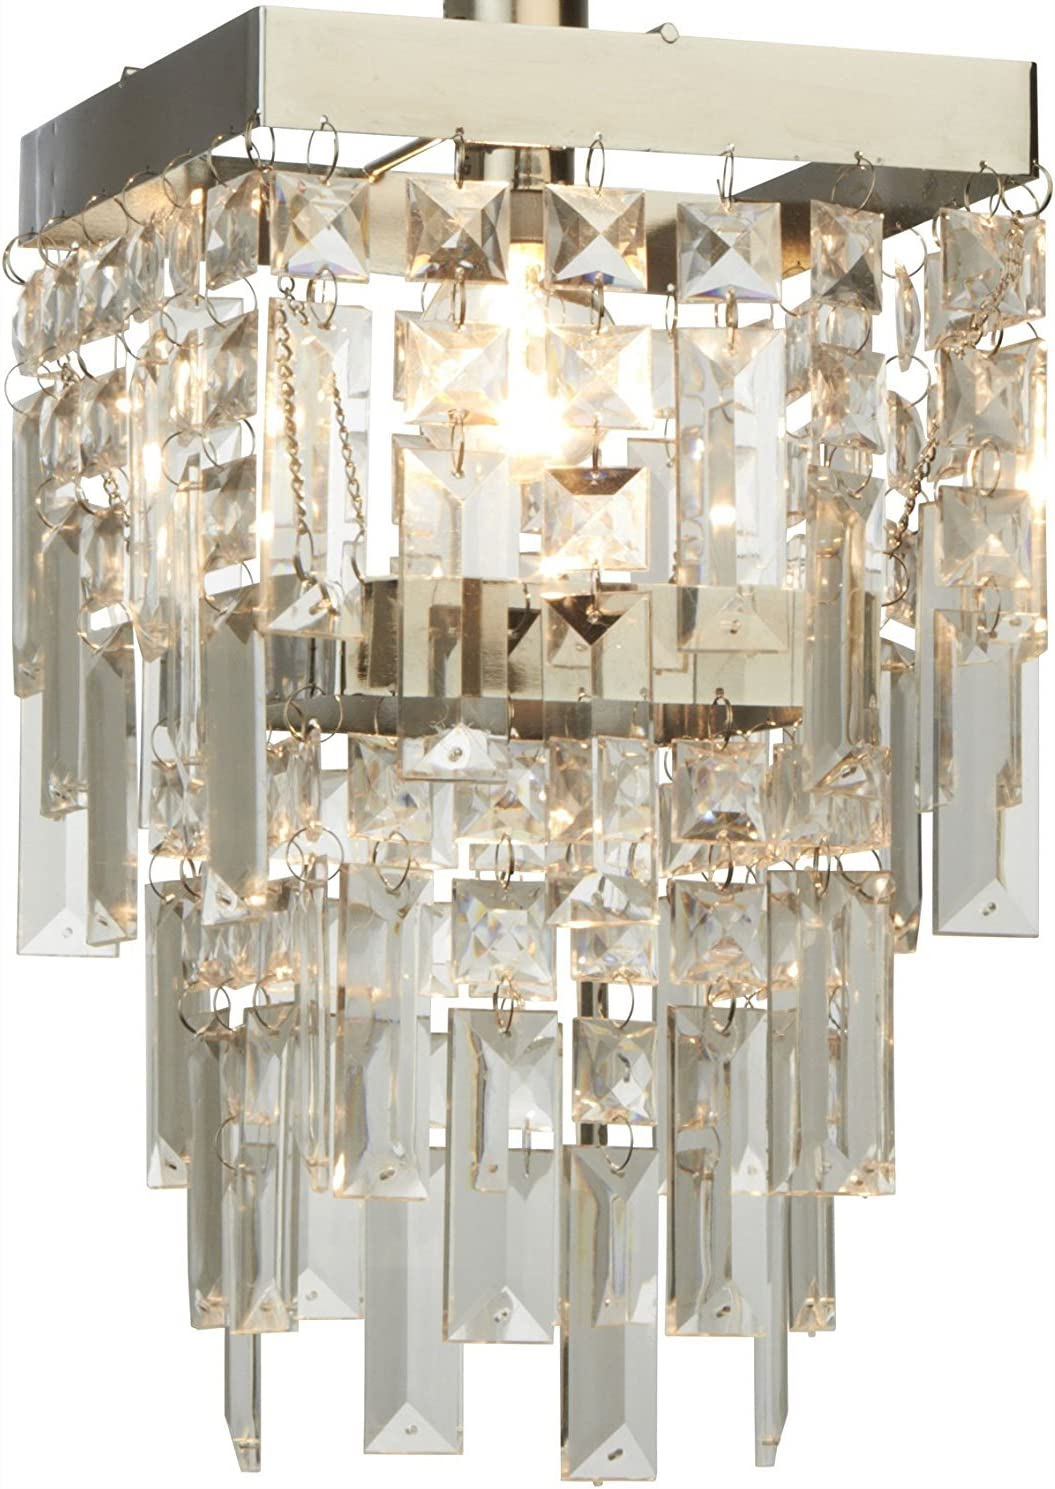 Dove Mill Lighting Elegant Darcey 2 Tier Square Chandelier Style Acrylic Droplet Ceiling Light Shade Pendant Clear Chrome Amazon Co Uk Kitchen Home